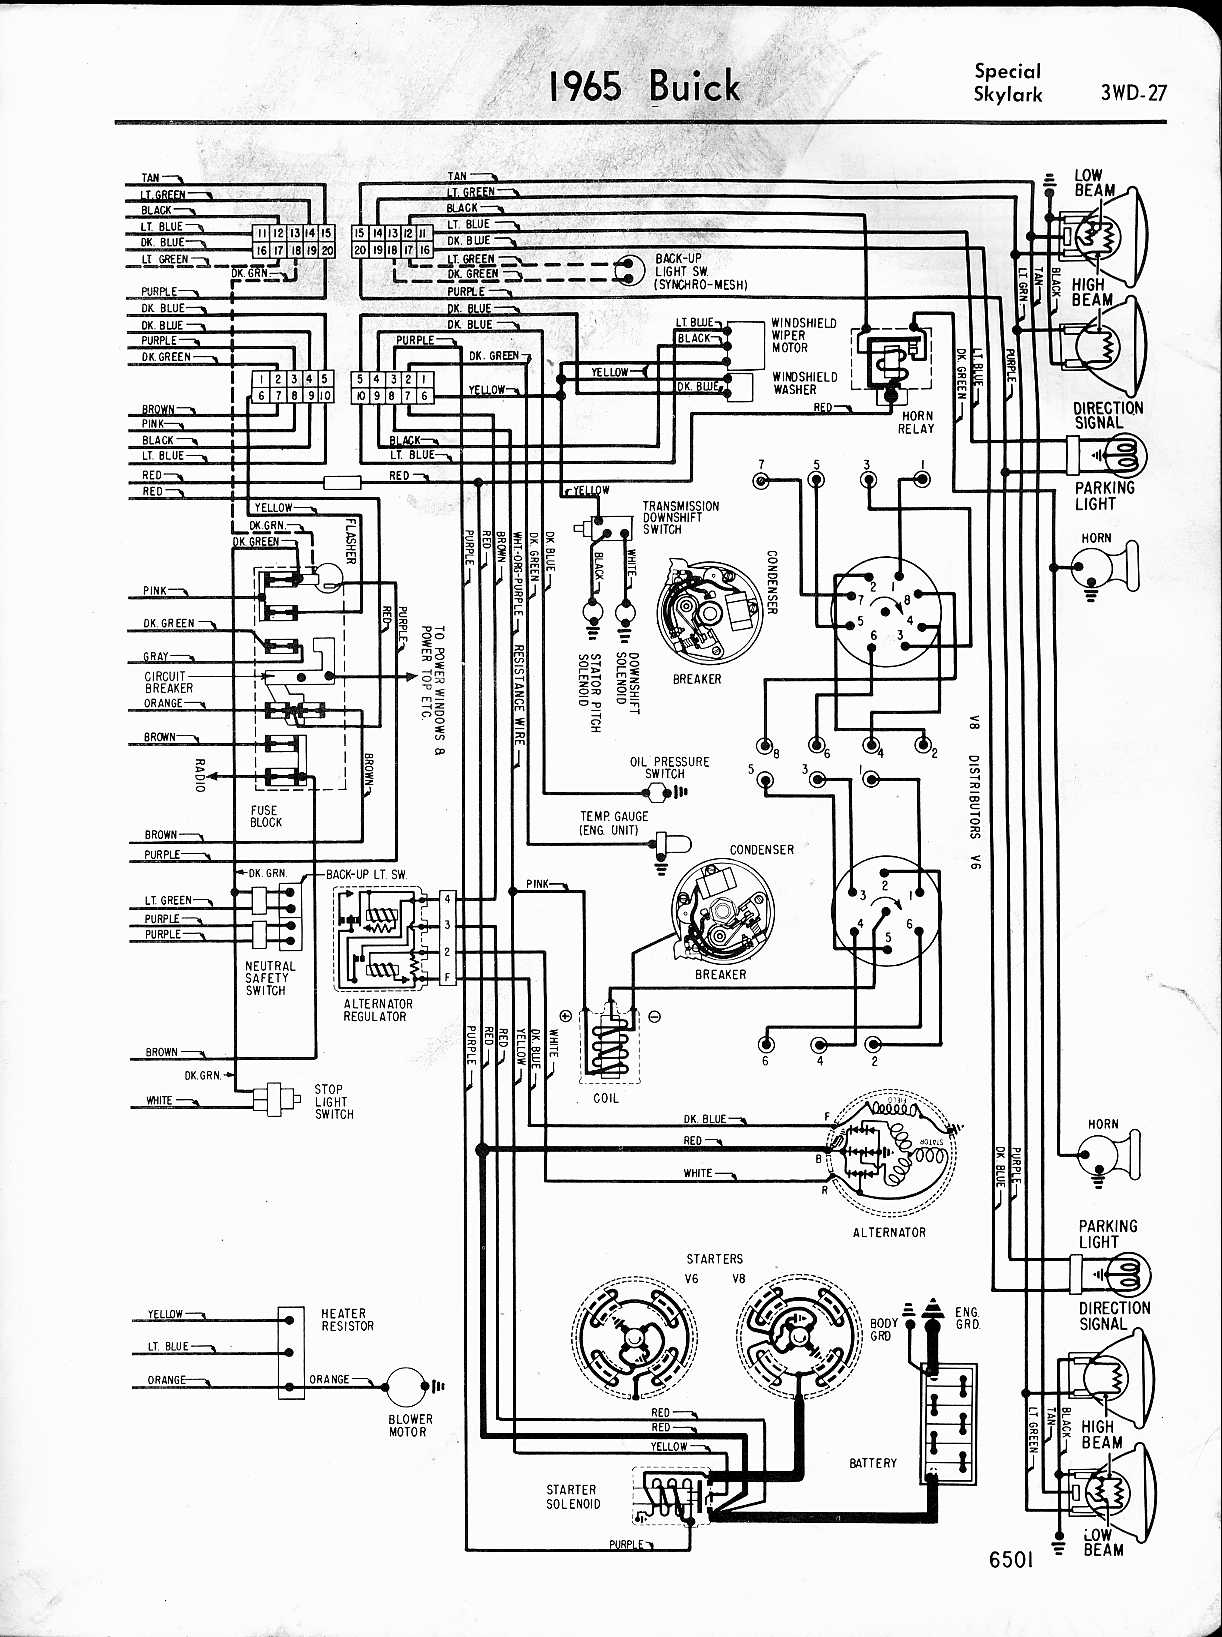 Viewtopic in addition 347551296216831499 moreover 1964 Mustang Wiring Diagrams Average Joe Restoration in addition 1956 Chevy Power Windows Wiring Diagram also About. on 66 chevy impala wiring diagram